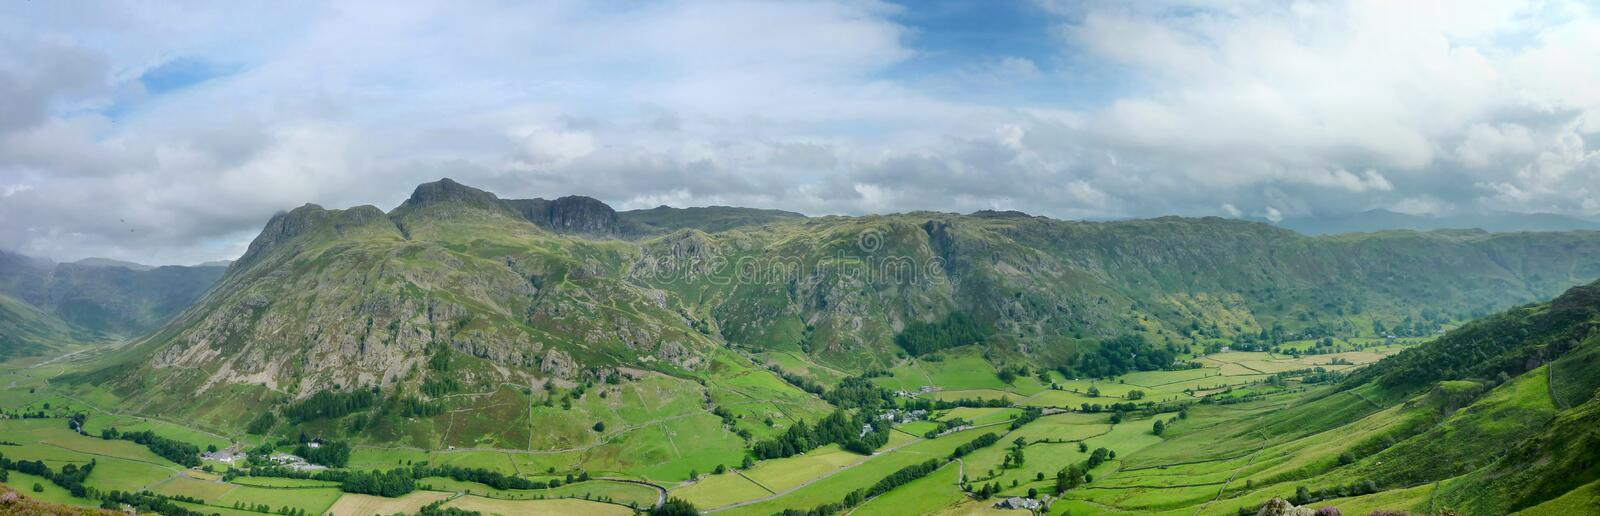 Panoramic of Great Langdale, Lake District, England. Looking over Great Langdale to the Langdale Pikes and valley royalty free stock image